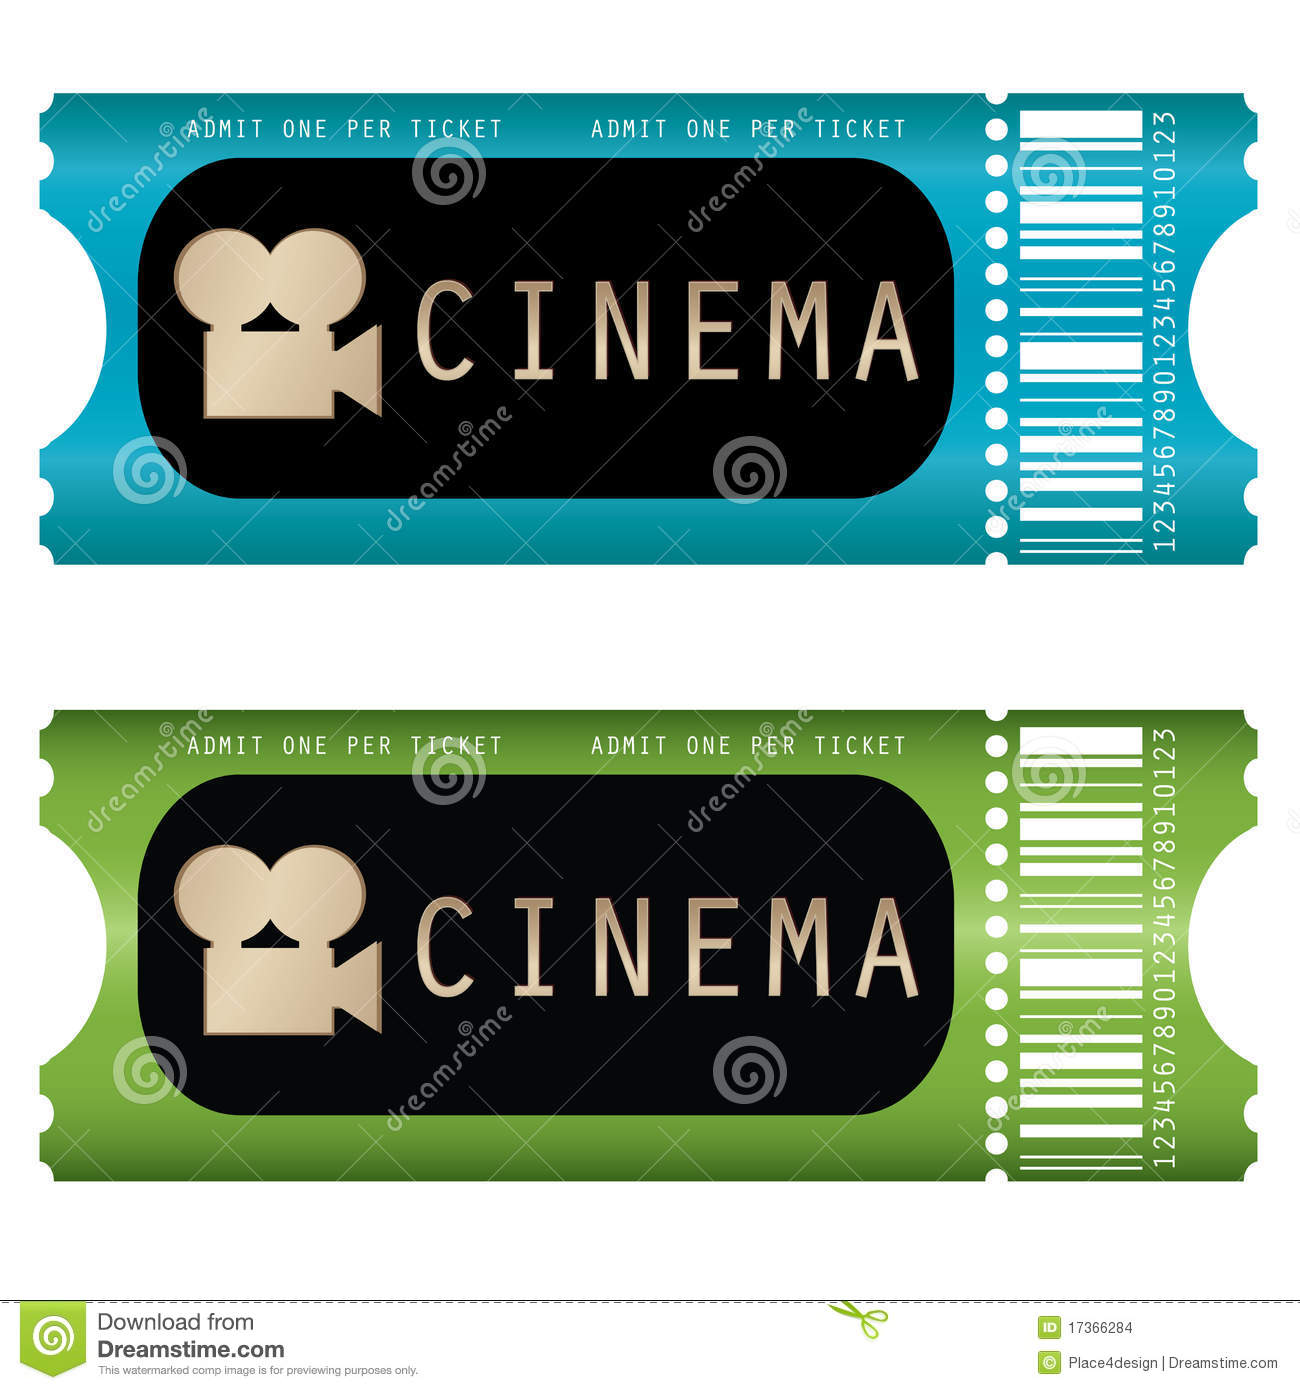 Movie Ticket Stock Images - Image: 17366284